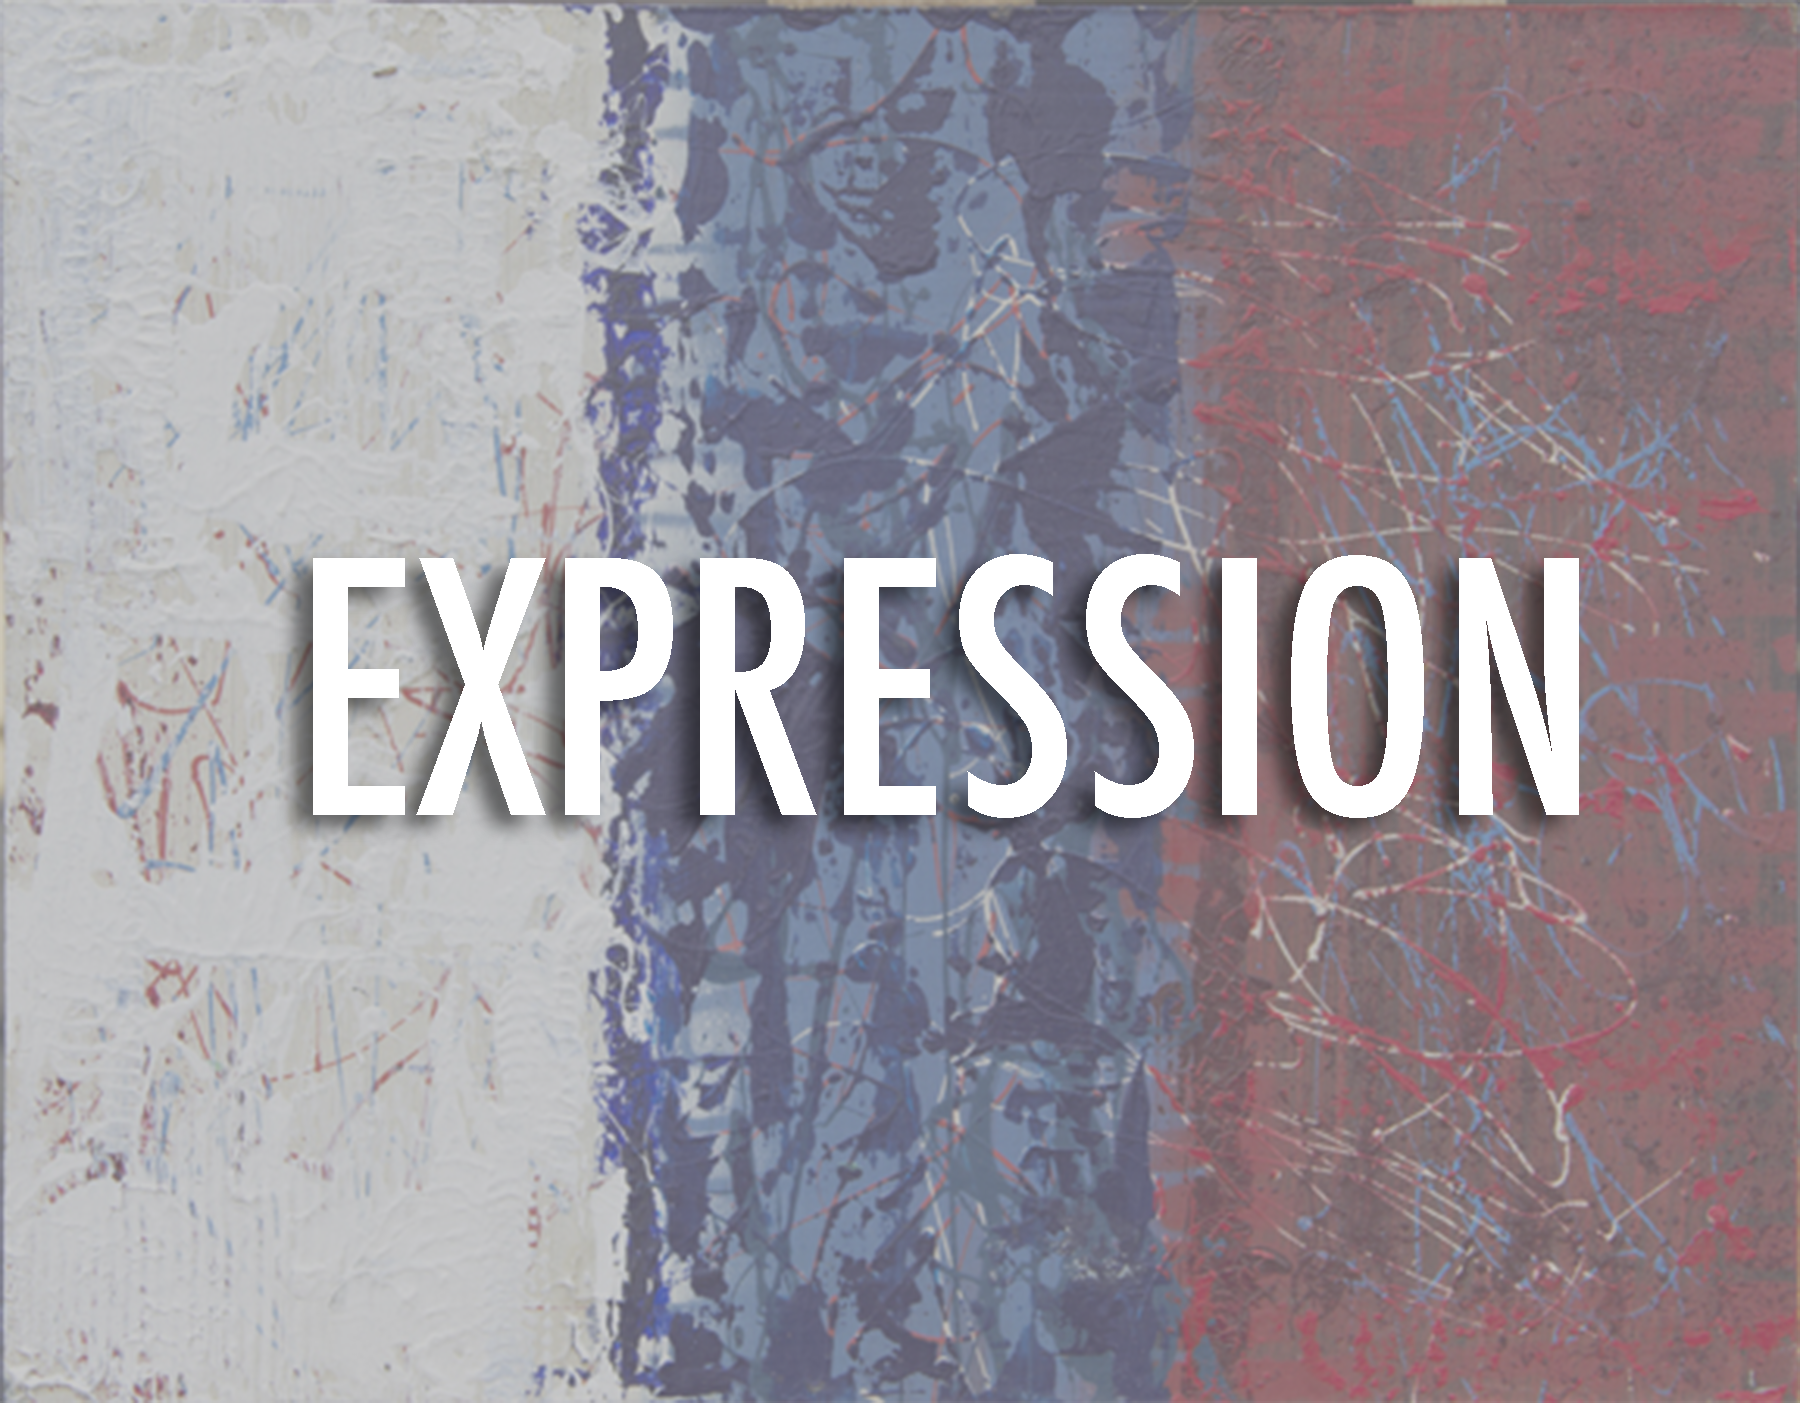 EXPRESSION SERIES    WHERE DEFINITIONS AND WORDS STOP, THIS SERIES BEGINS. THERE IS NO SUBJECT INVOLVING EXPRESSIONS AND EMOTION THAT CAN'T MAKE THIS EVER GROWING SERIES. THE STYLES COVERED HERE CREATIVELY DISPLAY THE LIMITLESS WAYS THAT WE CAN EXPRESS OURSELVES.